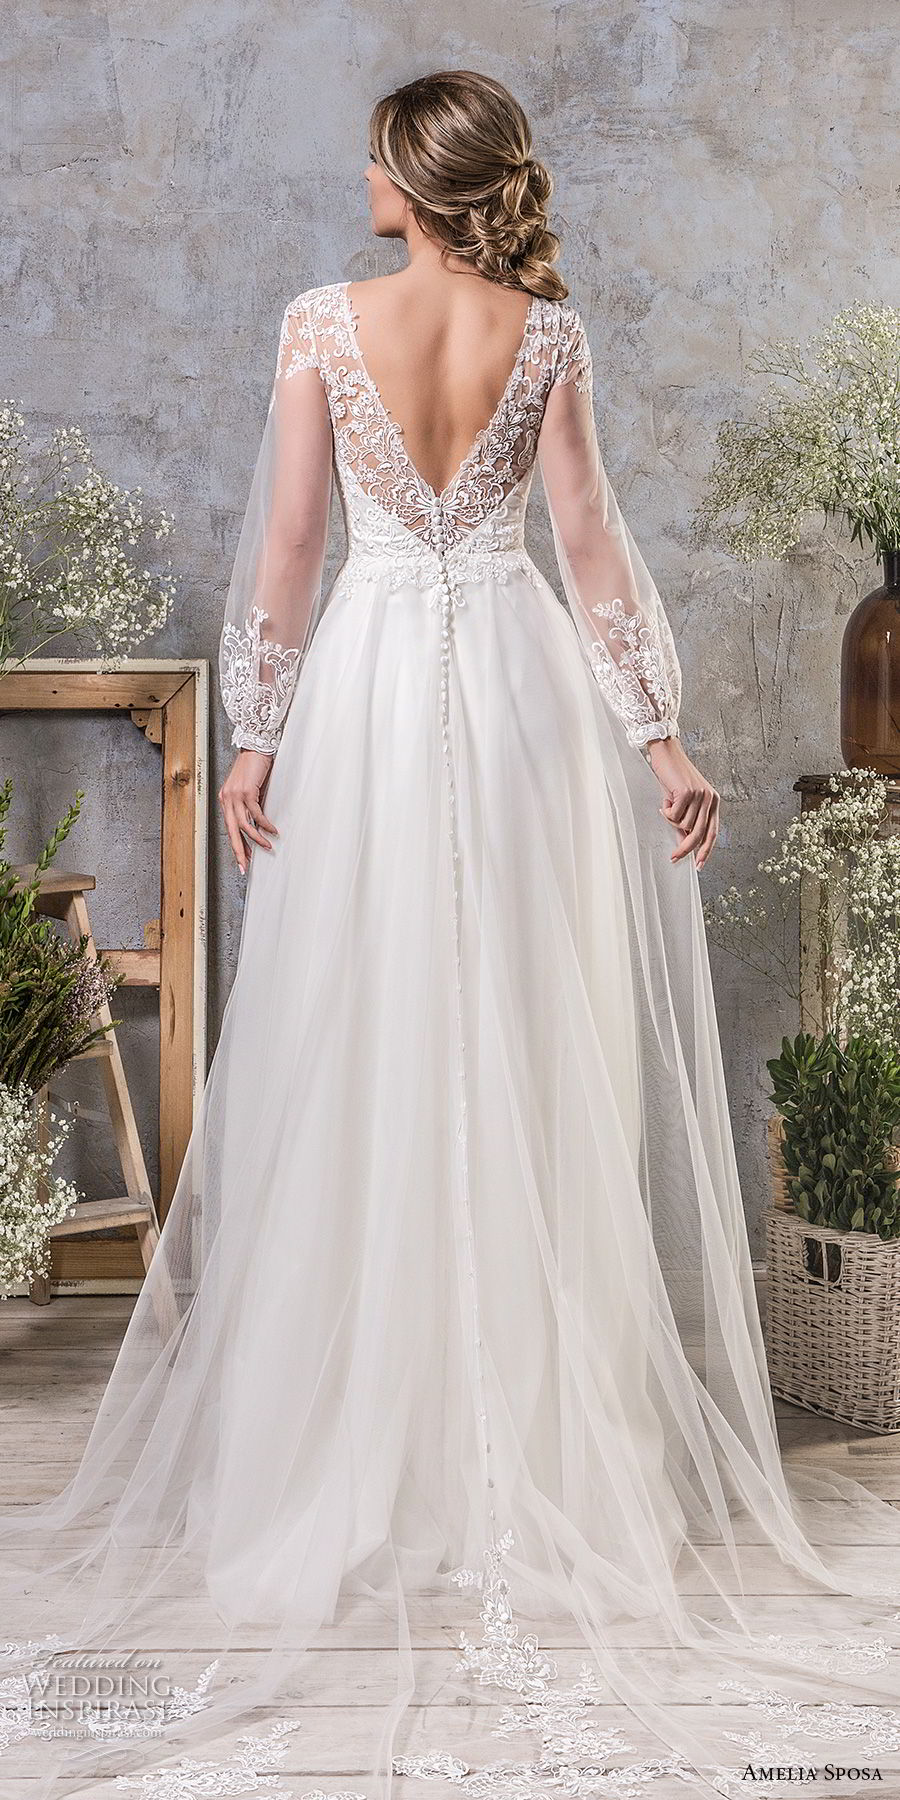 amelia sposa fall 2018 bridal long bishop sleeves illusion jewel semi sweetheart neckline heavily embellished bodice romantic a line wedding dress open v back chapel train (16) bv